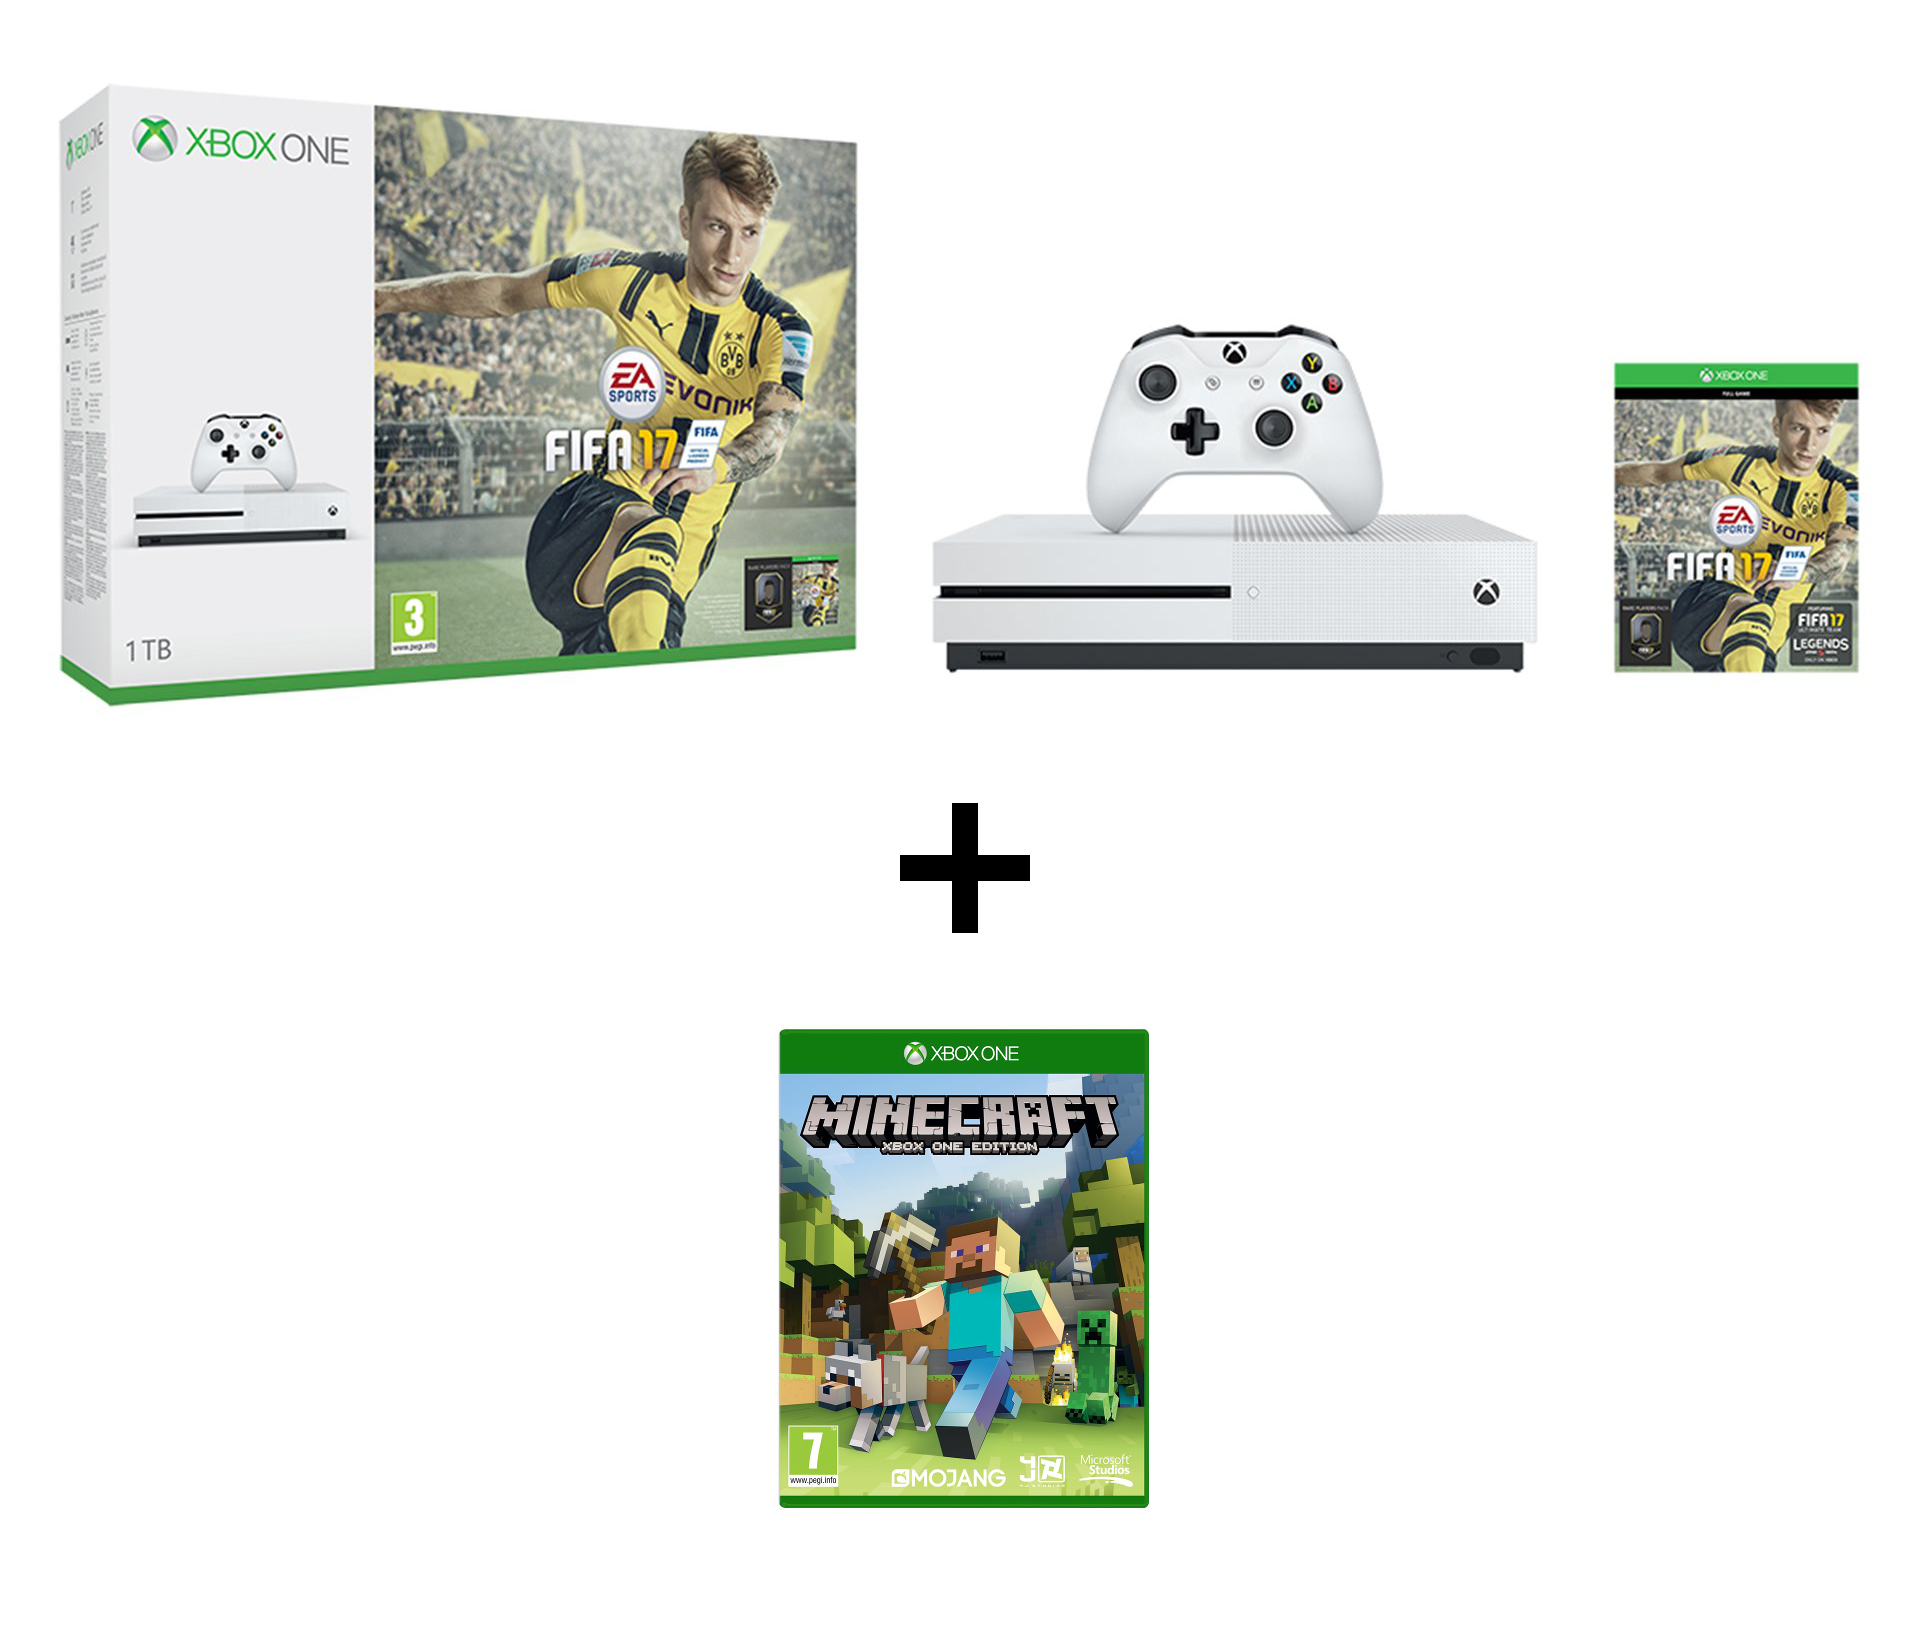 XBOX ONE S 1 TB + 2 hry (FIFA 17, Forza Motorsport 6) - AKCE!